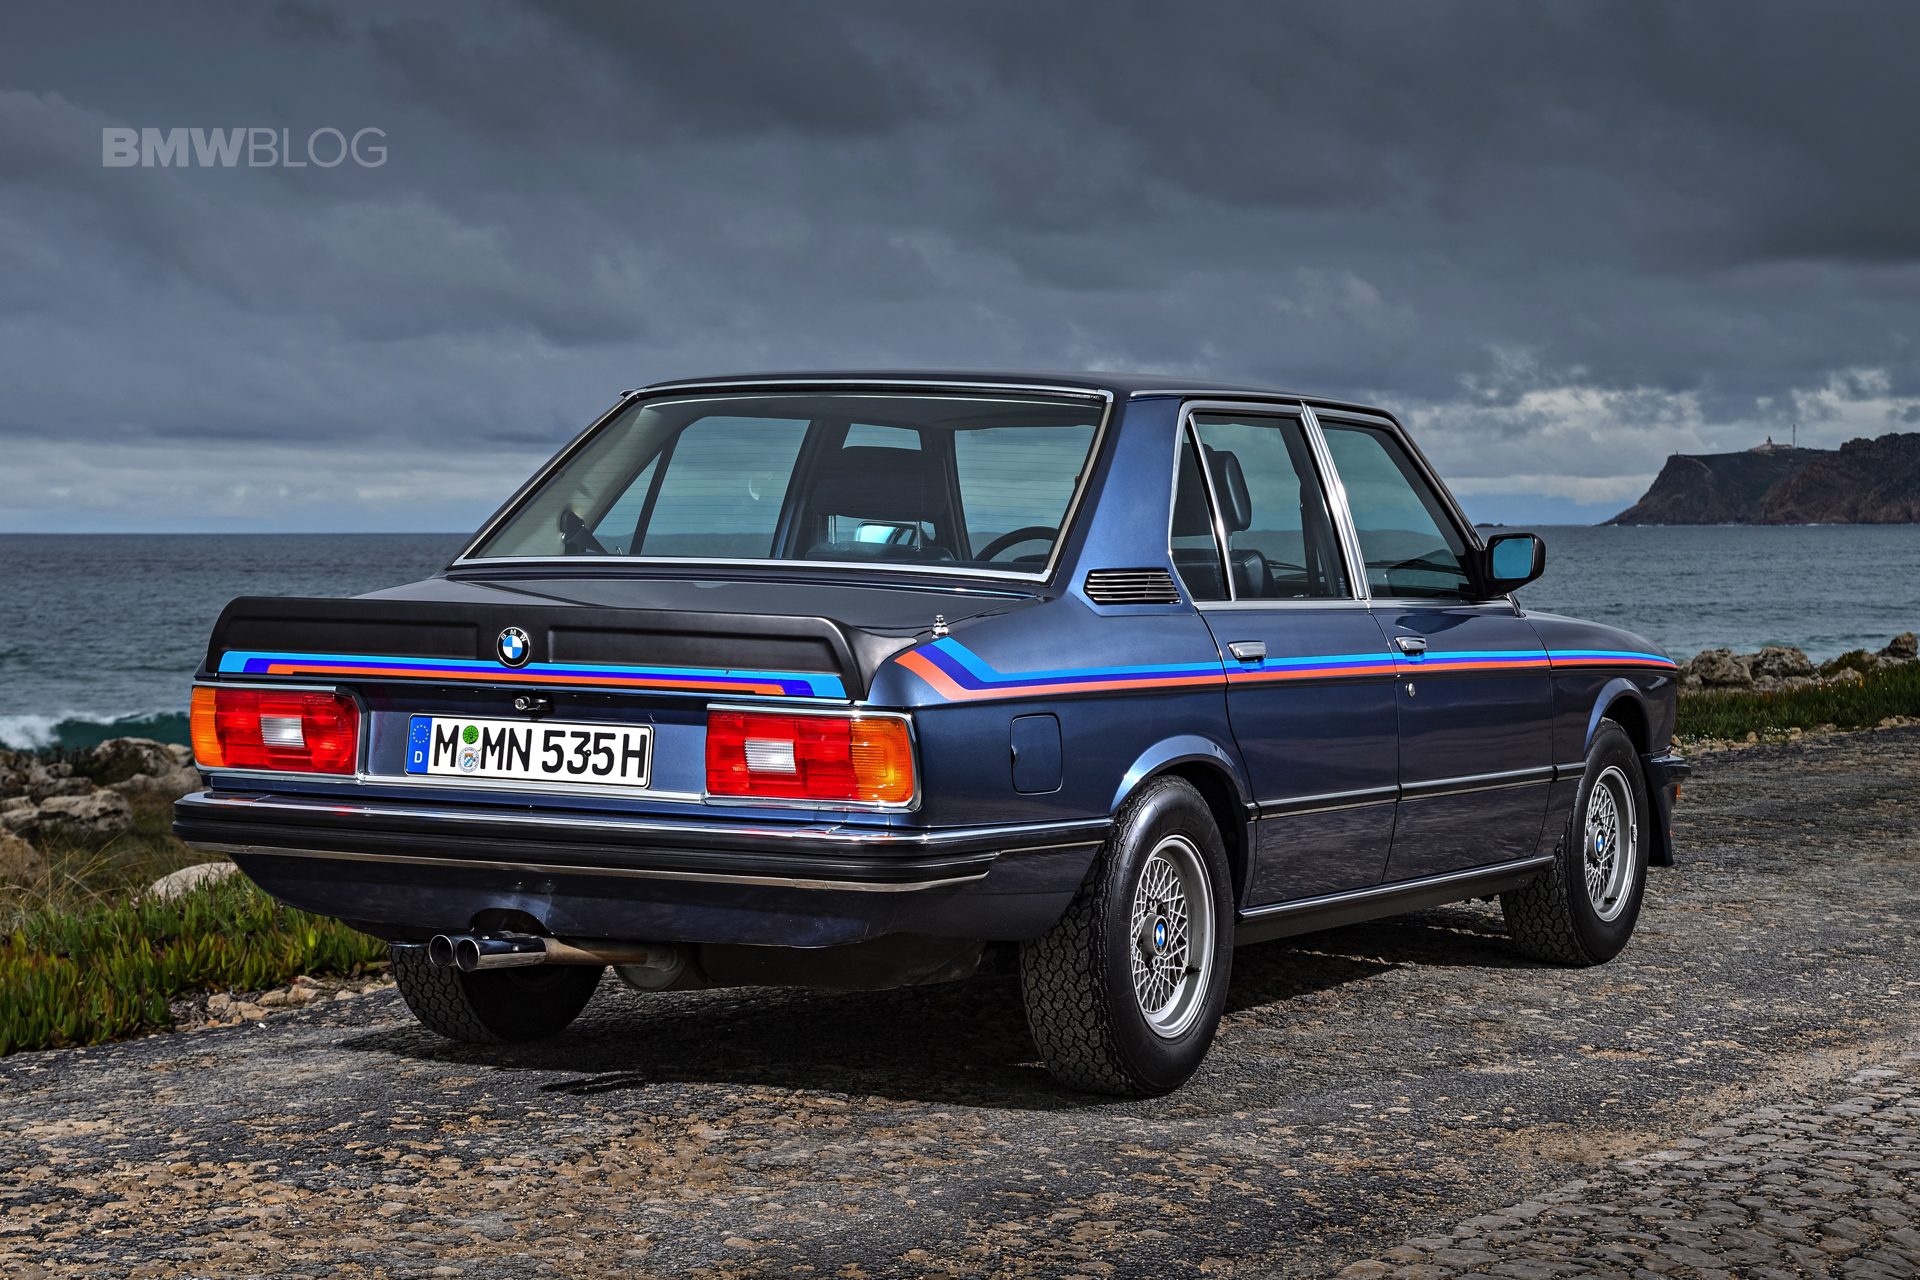 Photoshoot With The Iconic BMW E12 M535i